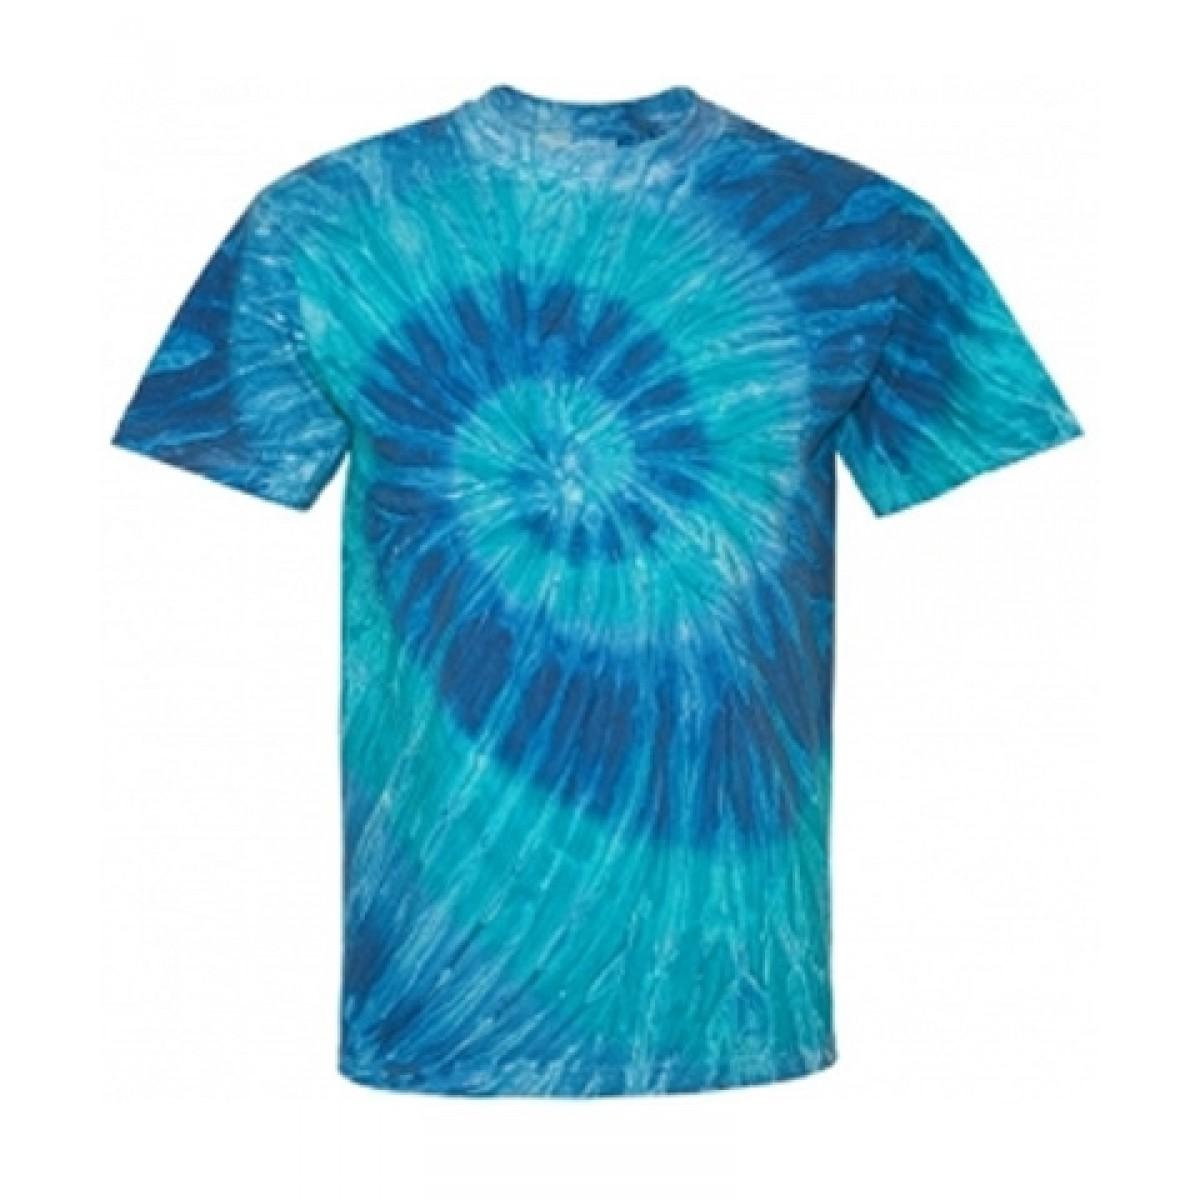 Blue or Black Ripple Tie Dye T-Shirt-Scuba Blue -4XL